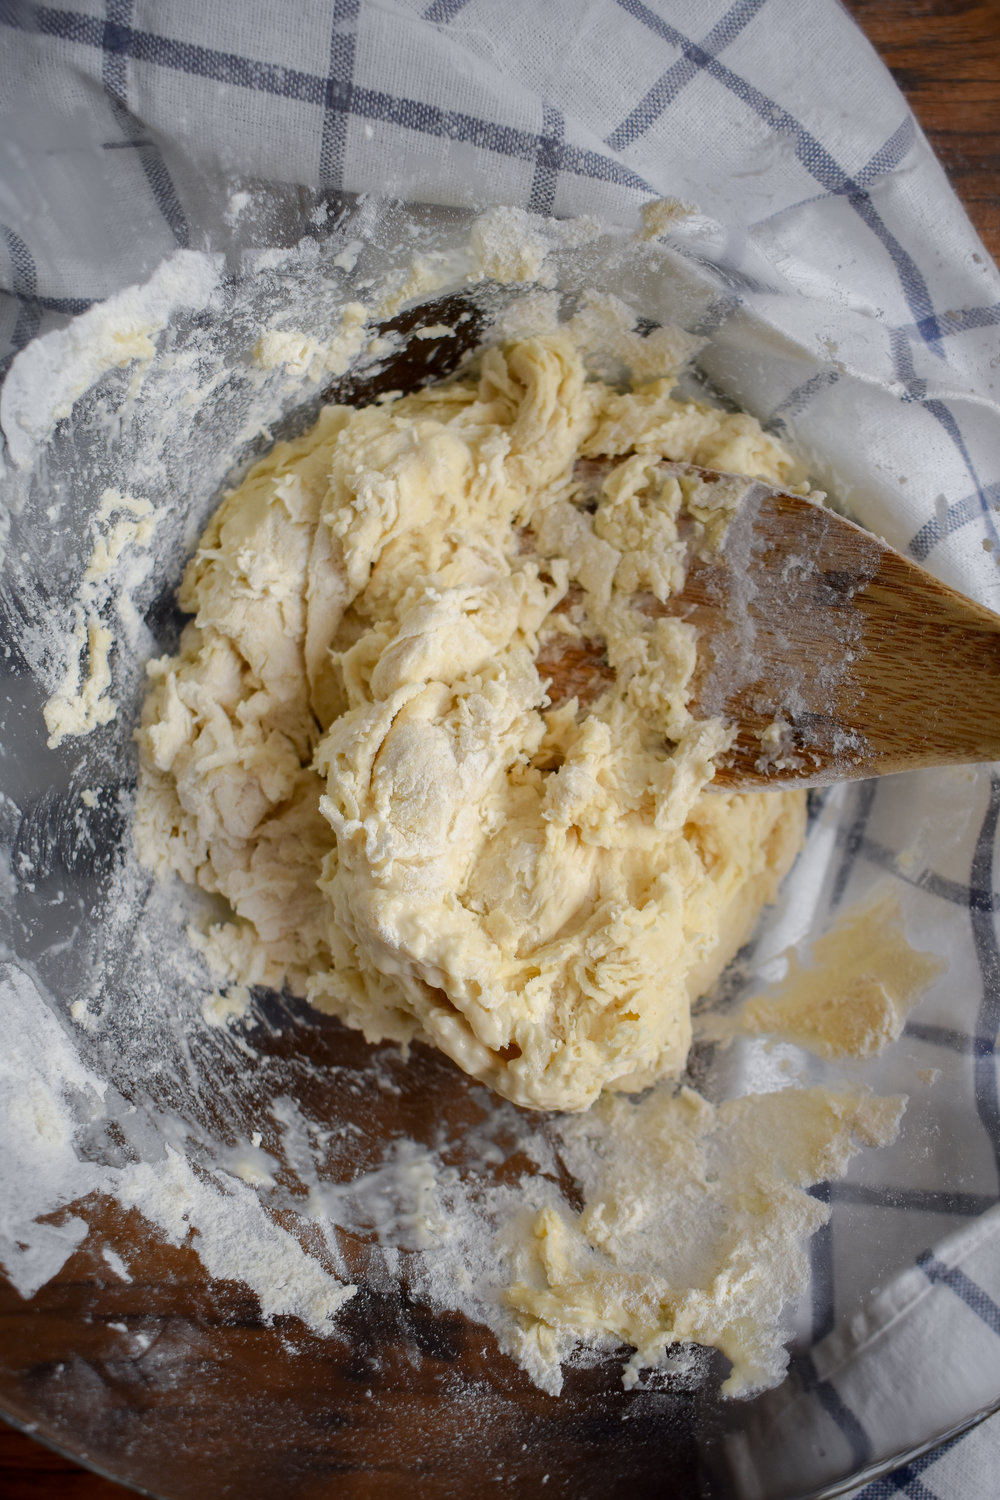 1. To start, add flour + salt from pierogi dough to a bowl. Whisk. In a separate bowl, mix water + melted butter. Slowly pour into flour mixture while stirring with wooden spoon until well mixed.